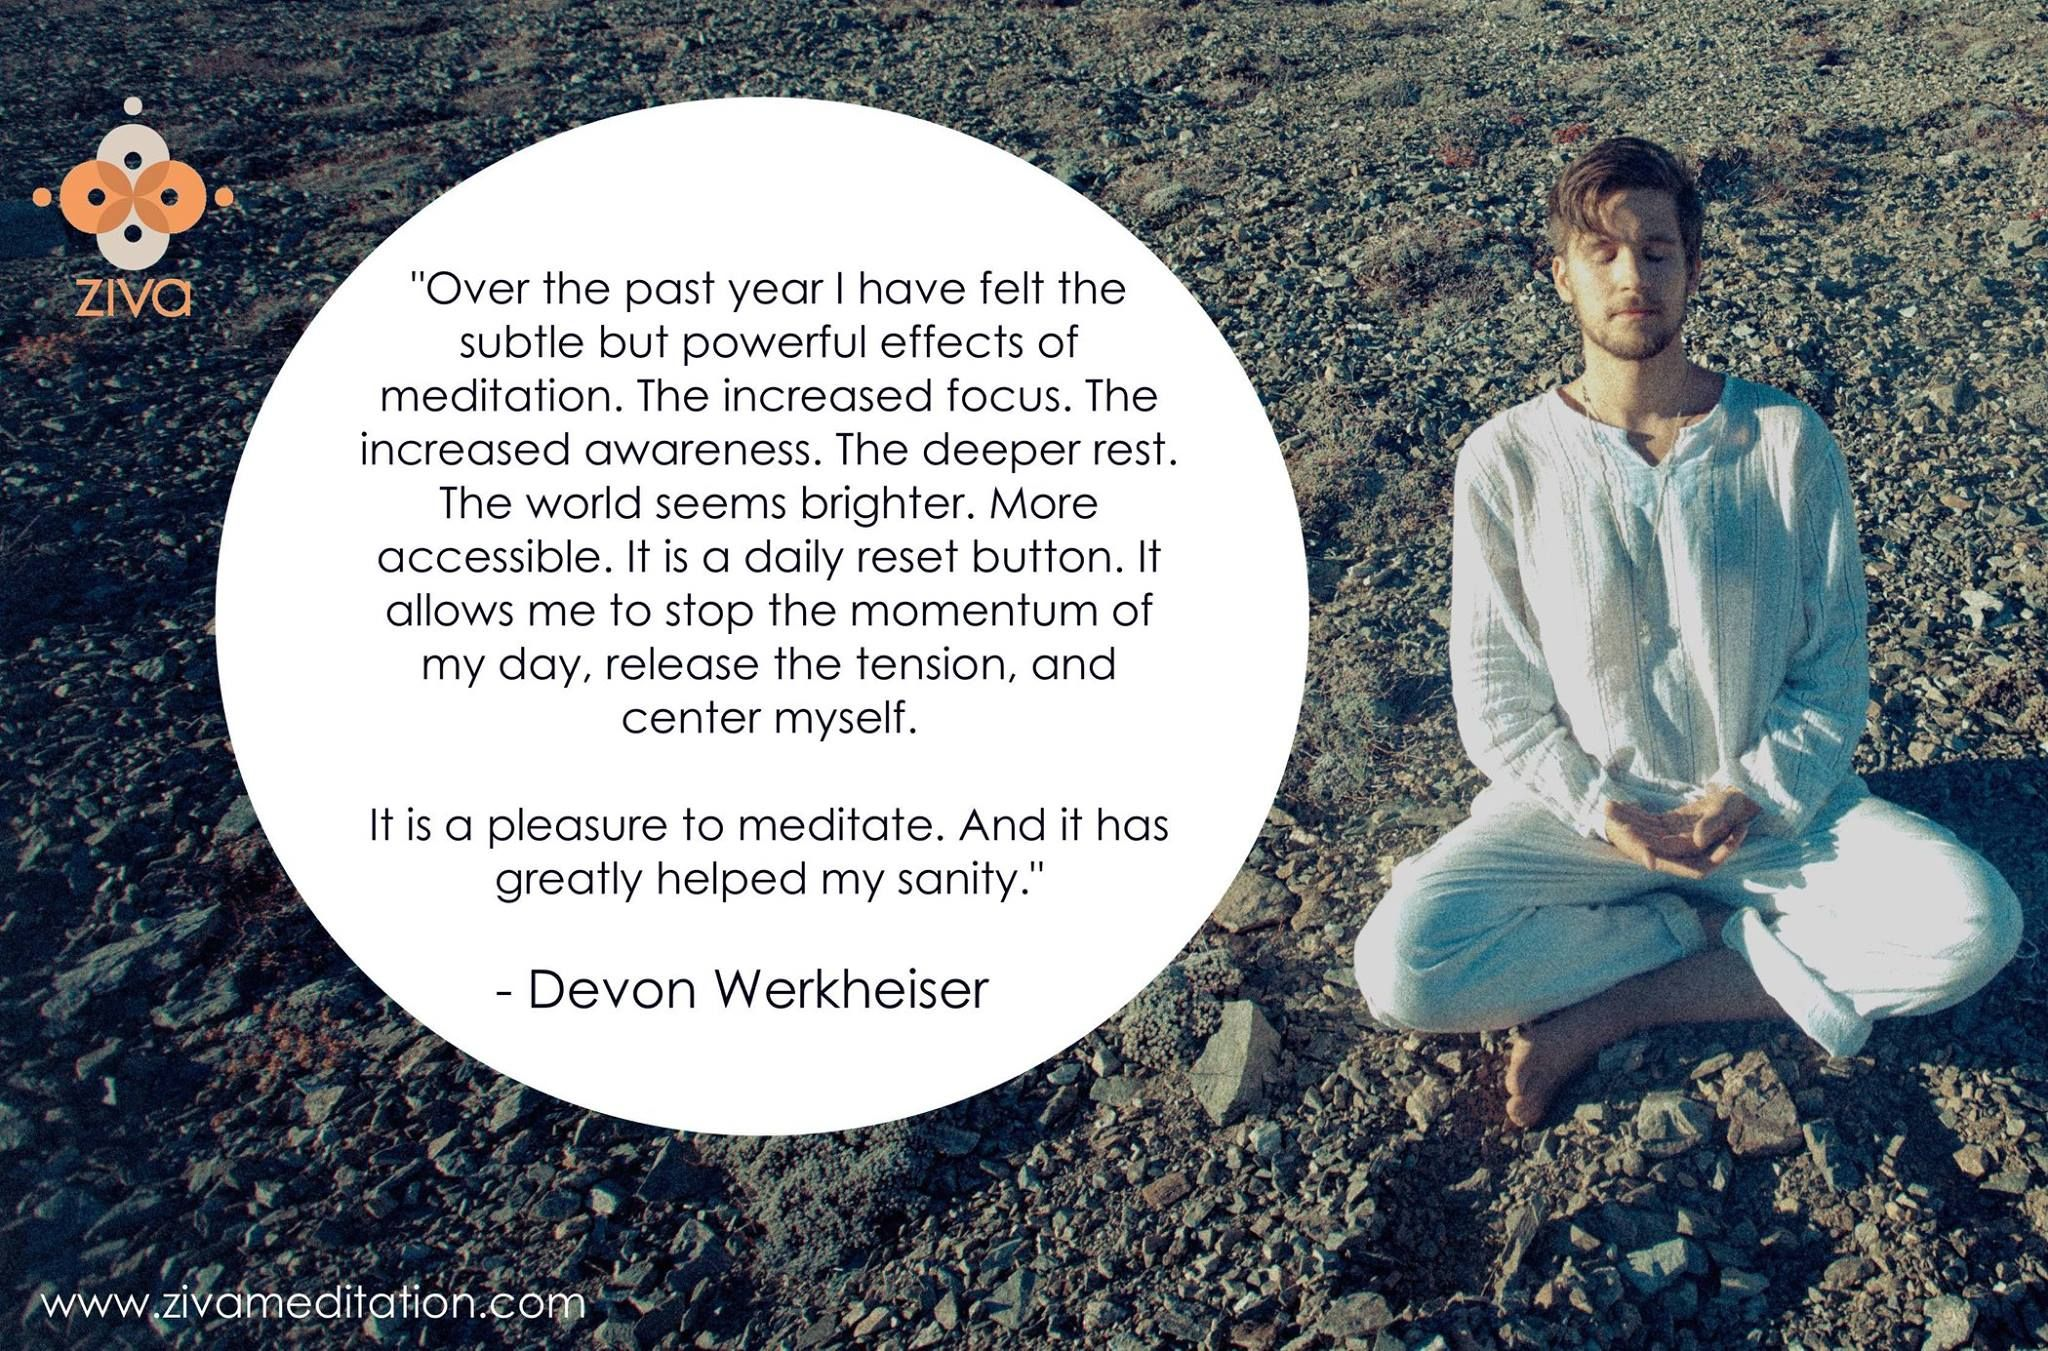 Check it out y'all! zivaFAMILY member Devon Werkheiser just released a beautiful new EP. Bravo for leading with creation, friend!